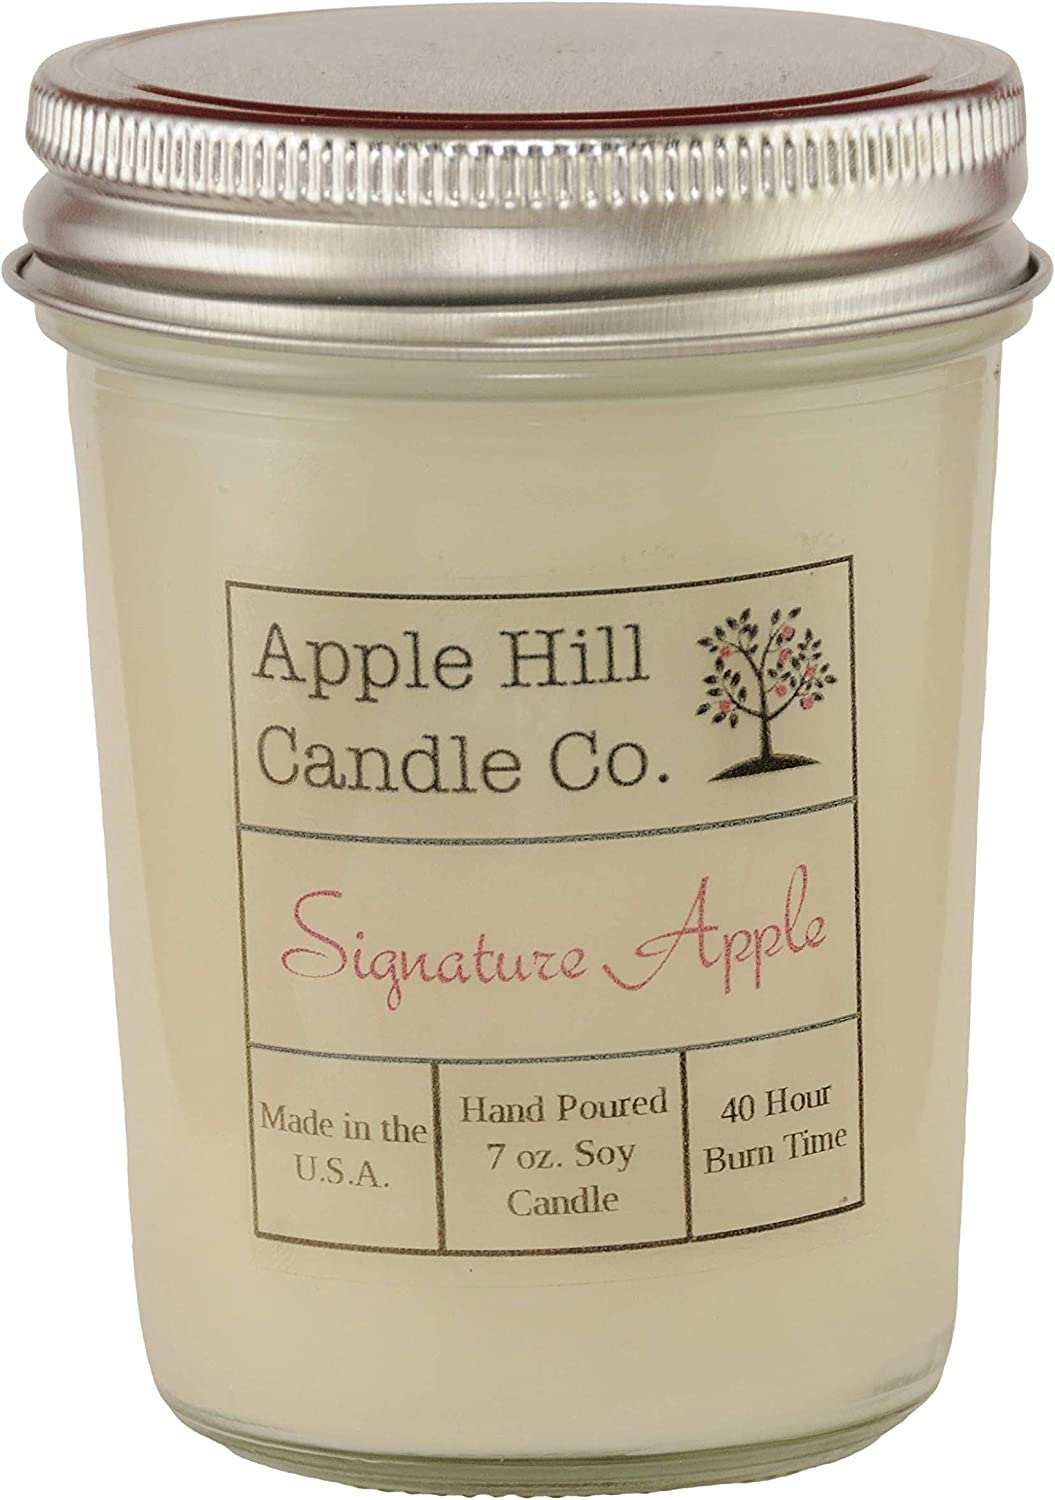 Apple Hill Candle Co Natural Scented Soy Candle - Signature Apple (7 oz.)   30-40 Hour Burn Time